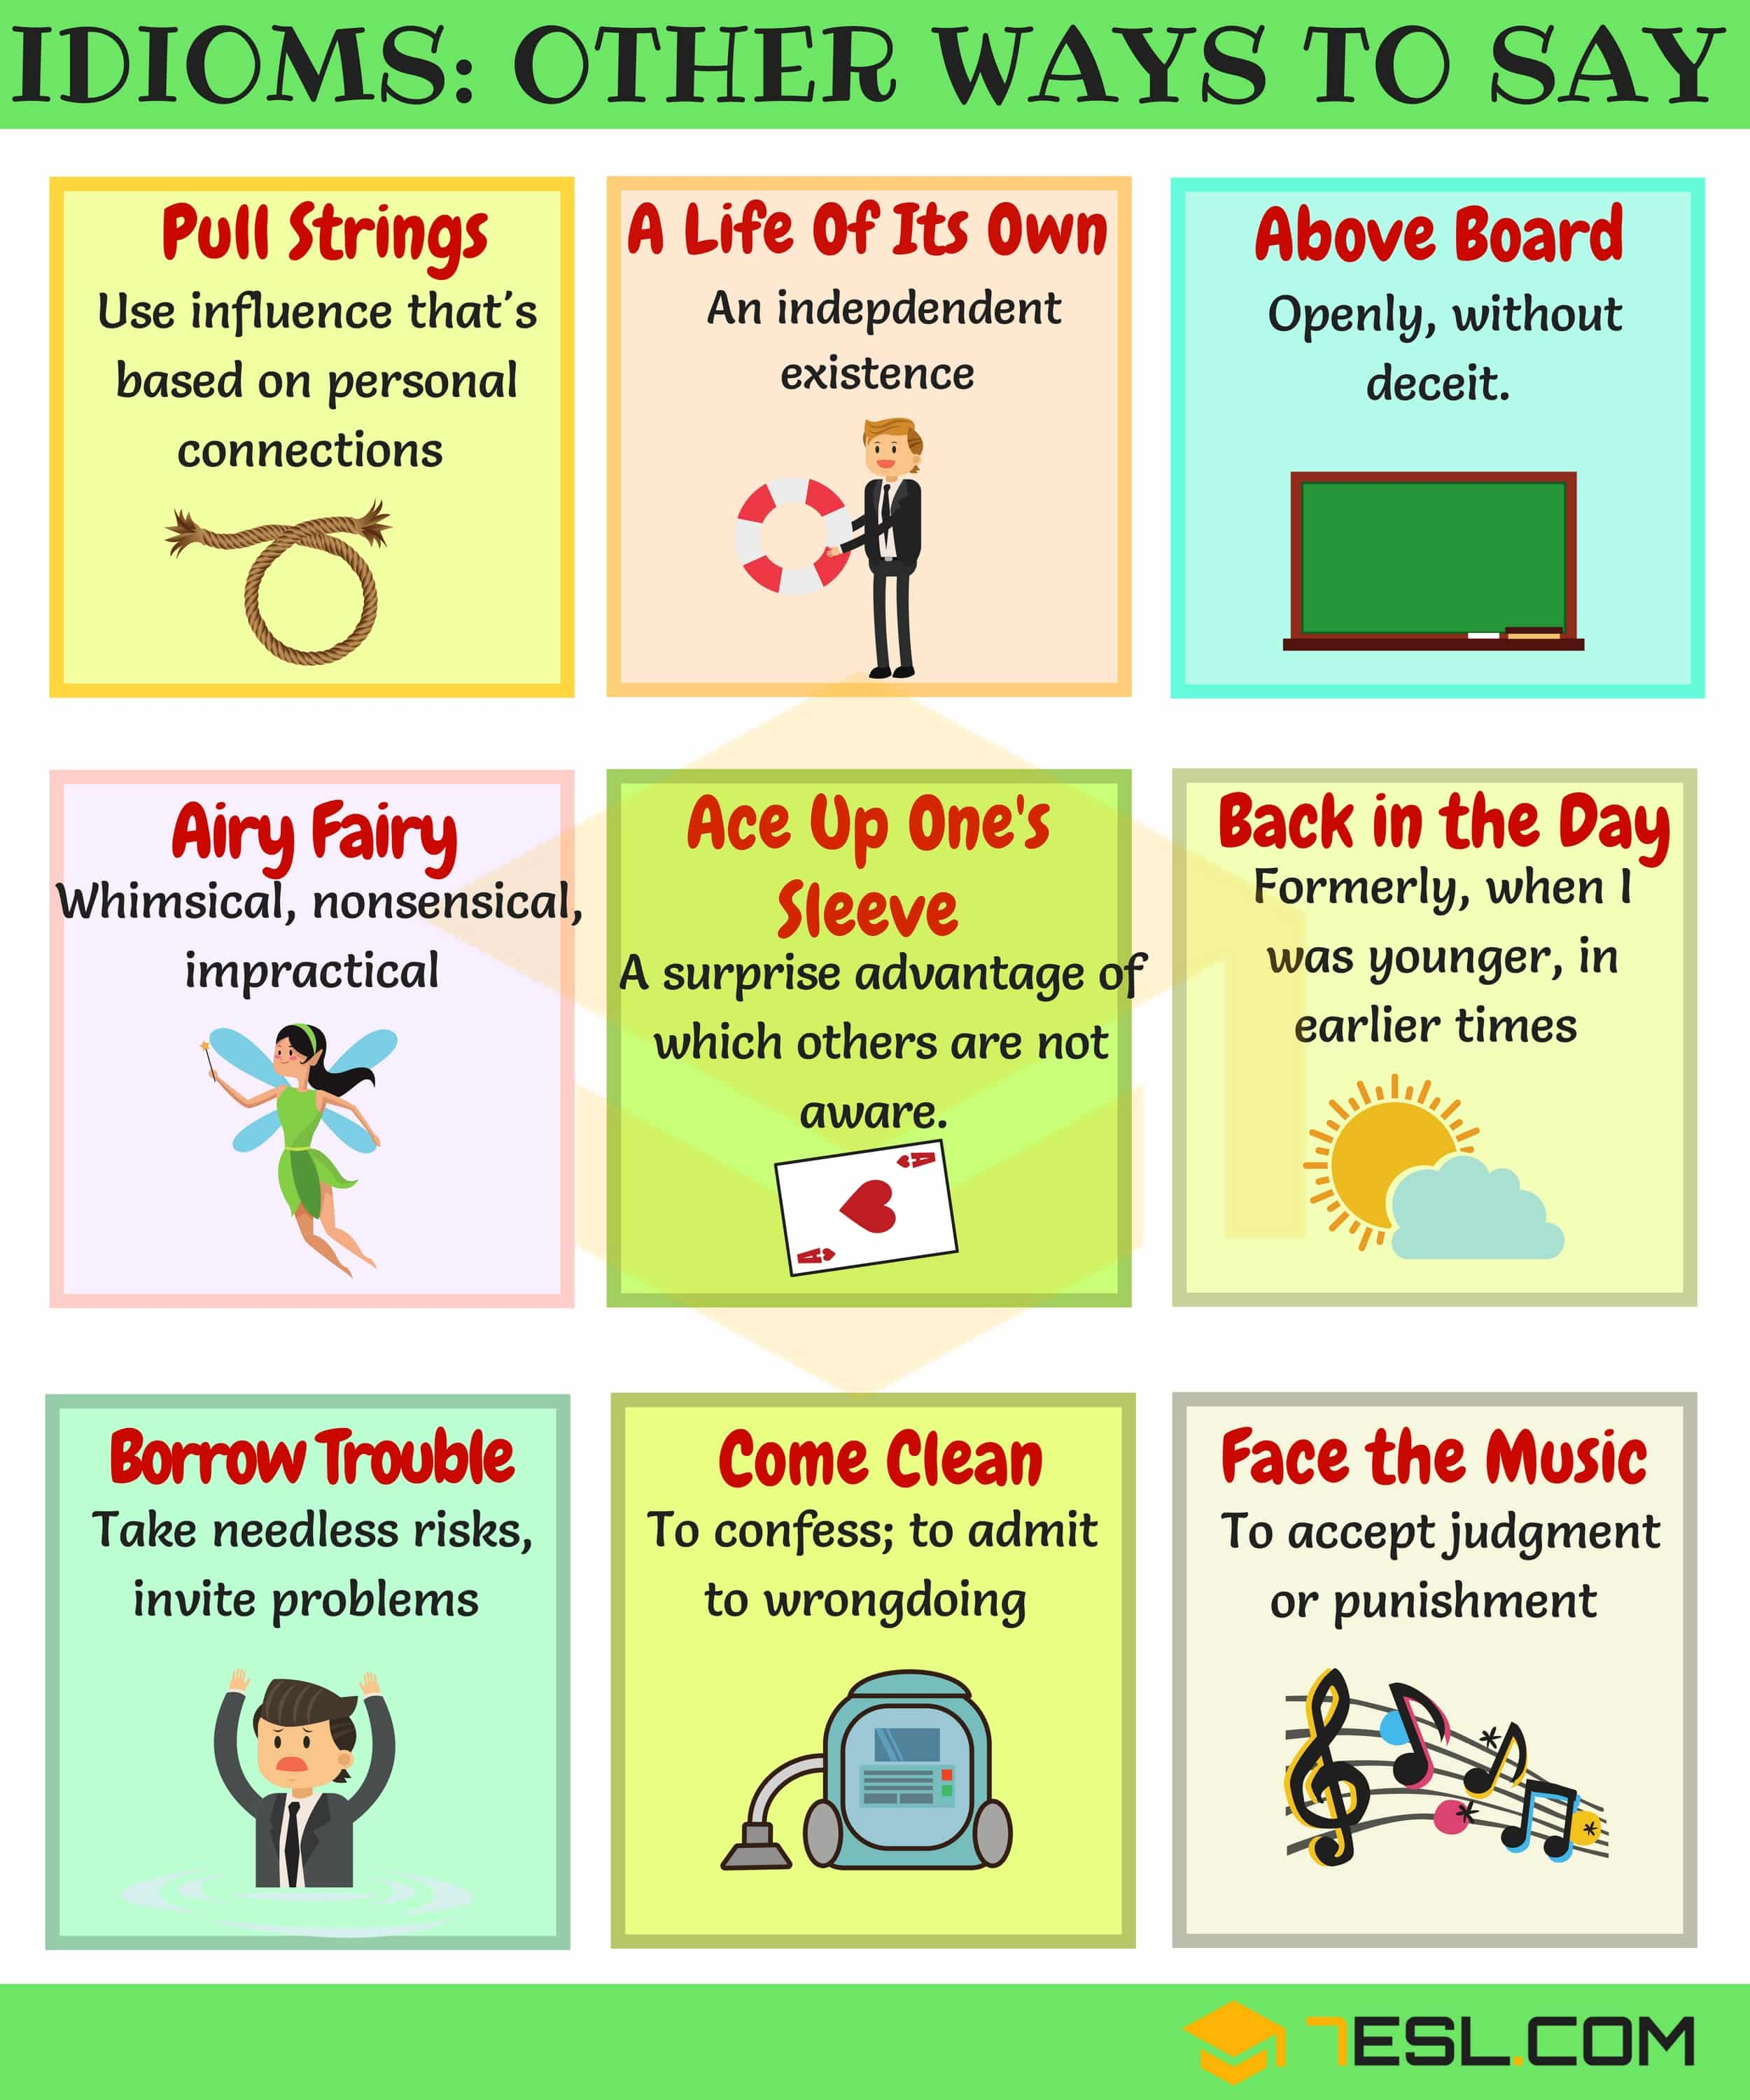 General Idioms | List of Idioms with Meaning and Examples 4